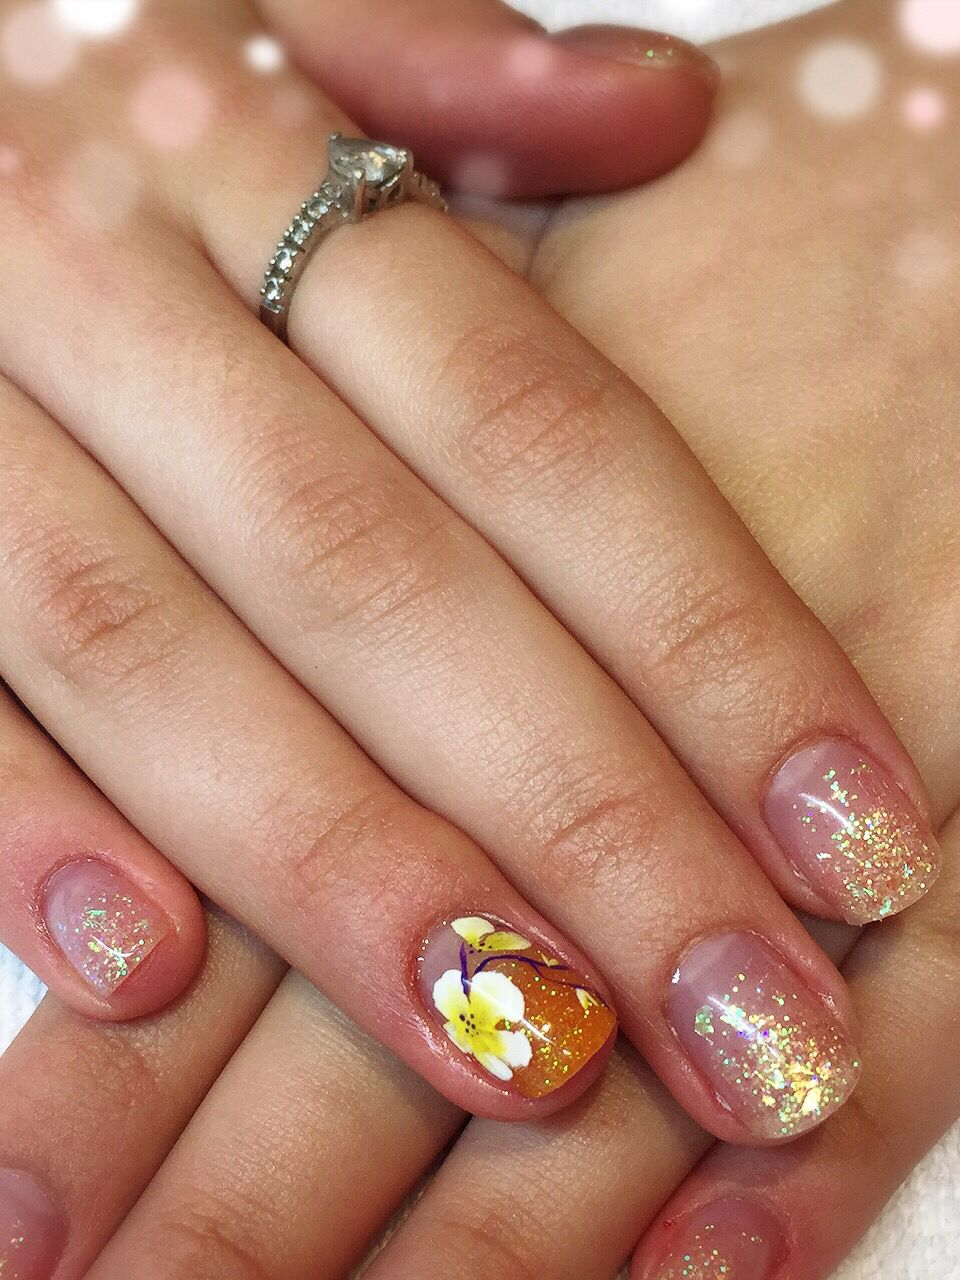 Acrylic Nails With Glitter Faiding And Hand Painted Flower Nail Art